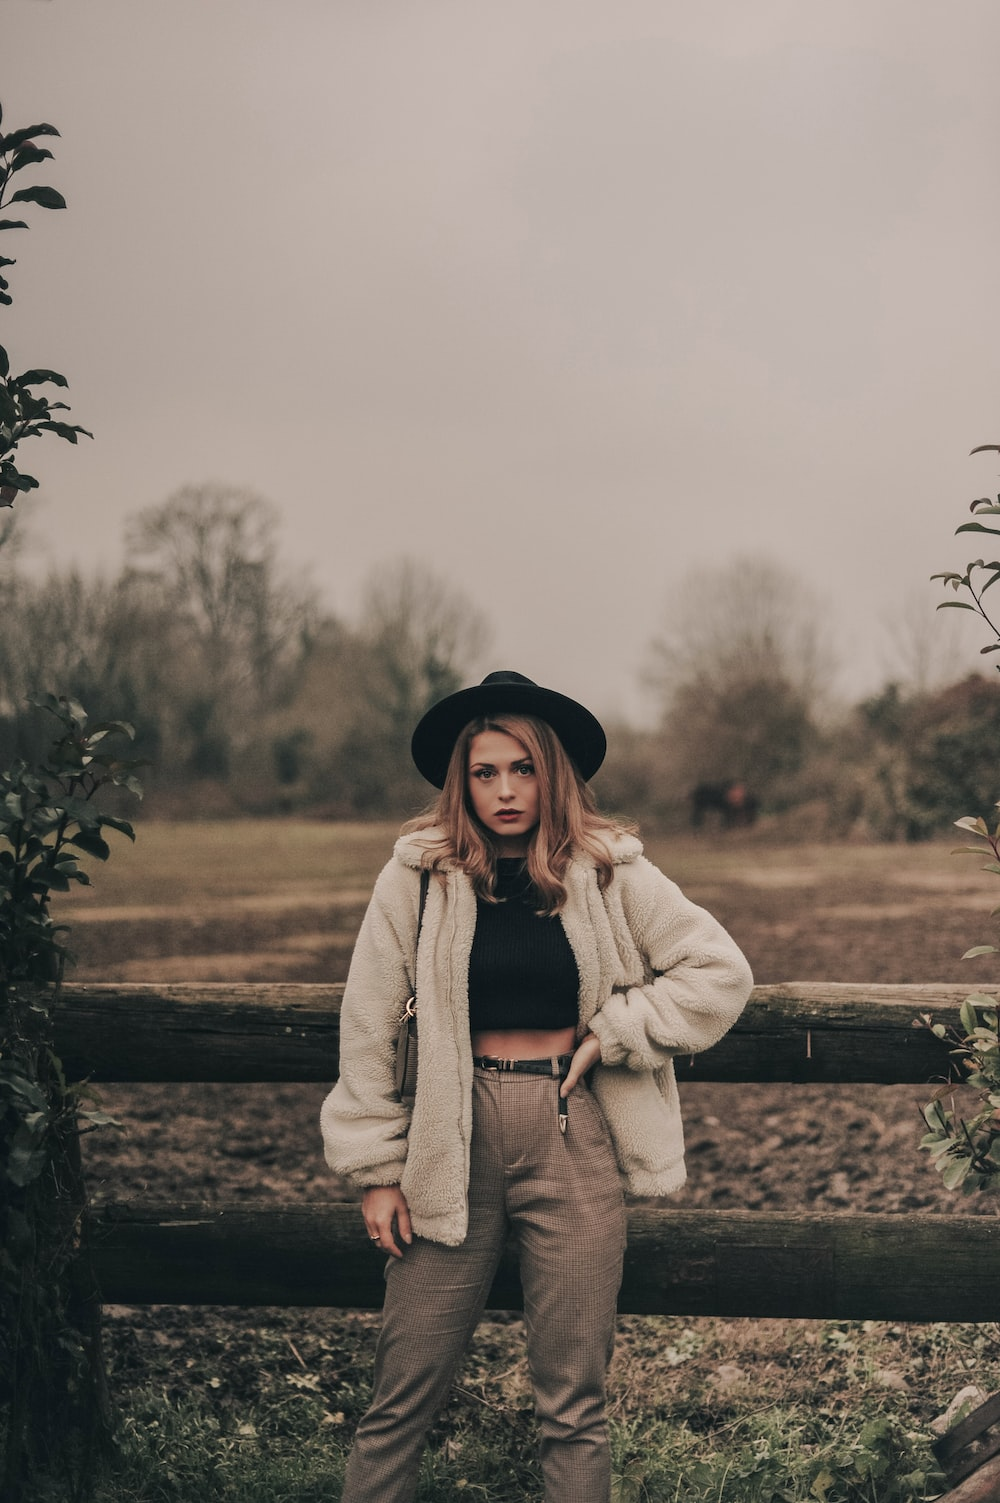 woman in coat and hat standing beside fence